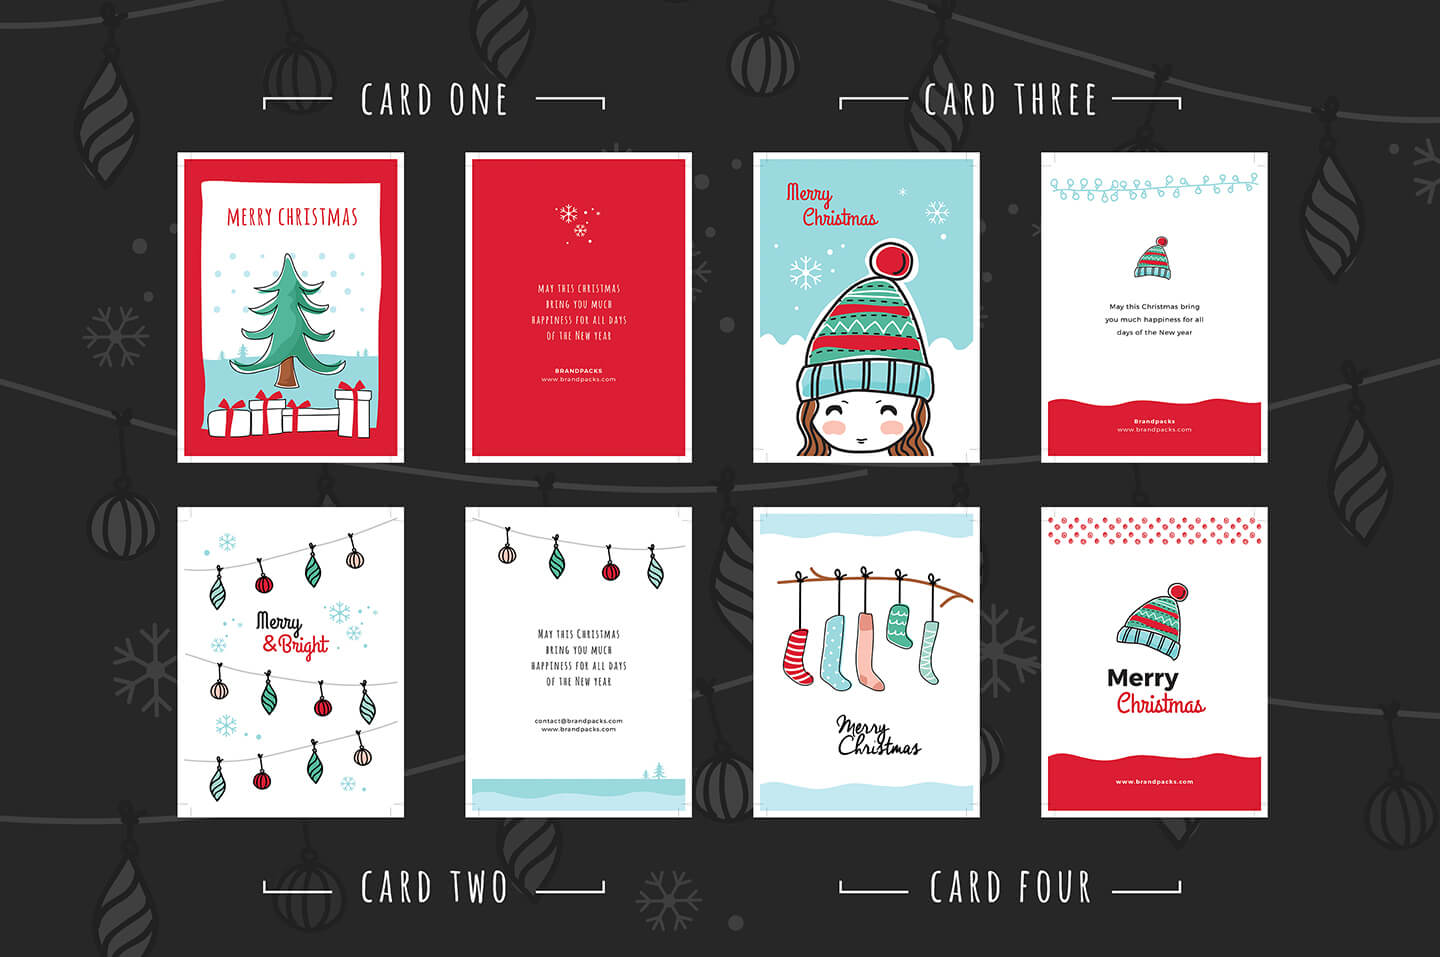 Free Christmas Card Templates For Photoshop & Illustrator Inside Adobe Illustrator Christmas Card Template